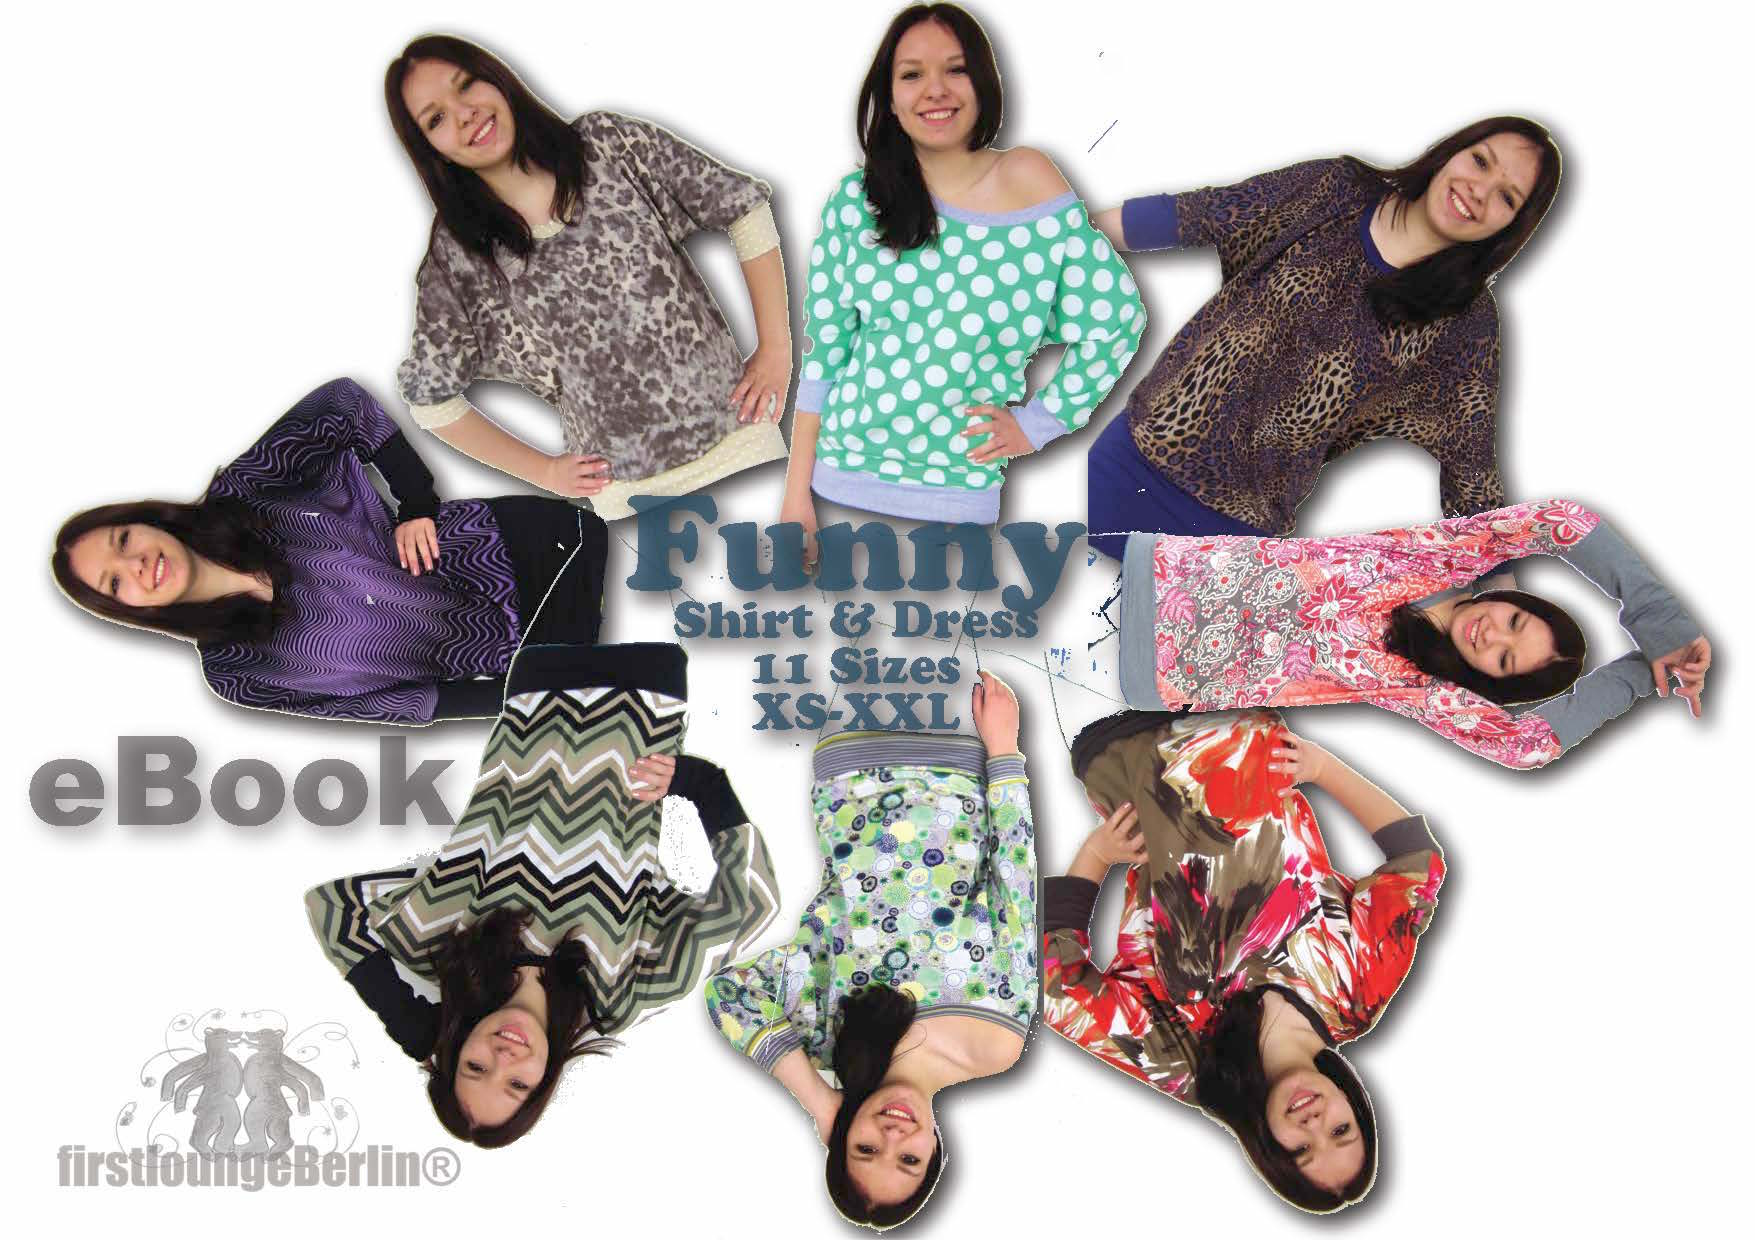 Funny Shirt & Dress with U-boat neckline, 11 sizes XS to XXL, instruction and pattern [Download]